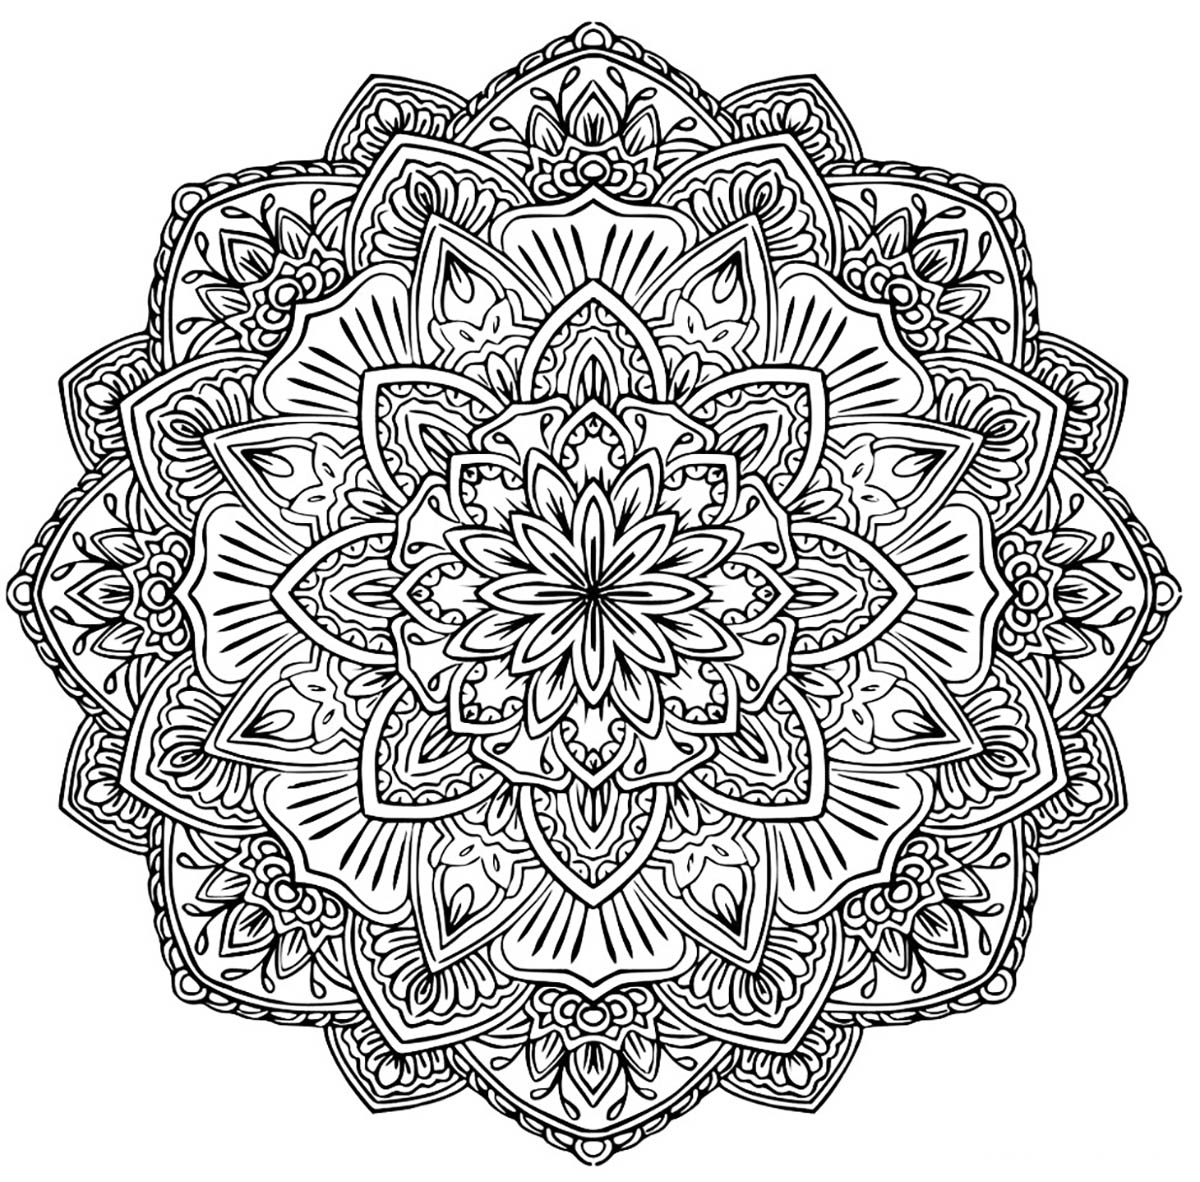 Mandala to download in pdf 1 - M&alas Adult Coloring Pages | free mandala colouring pages for adults